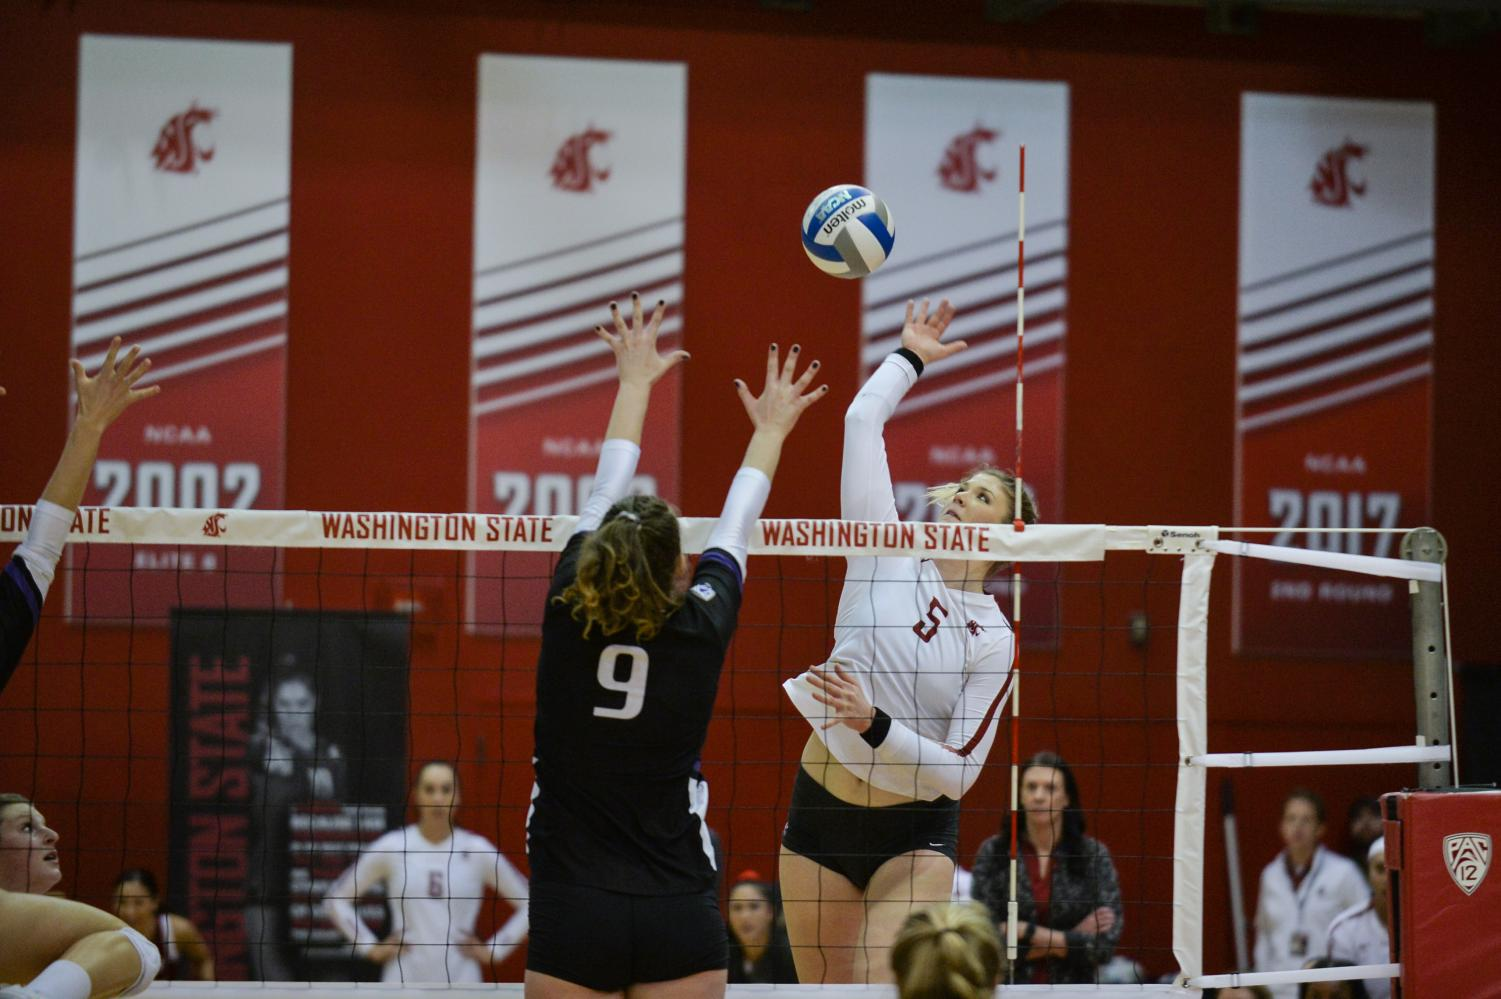 Senior outside hitter McKenna Woodford hits the ball against University of Washington on Saturday in Bohler Gym.